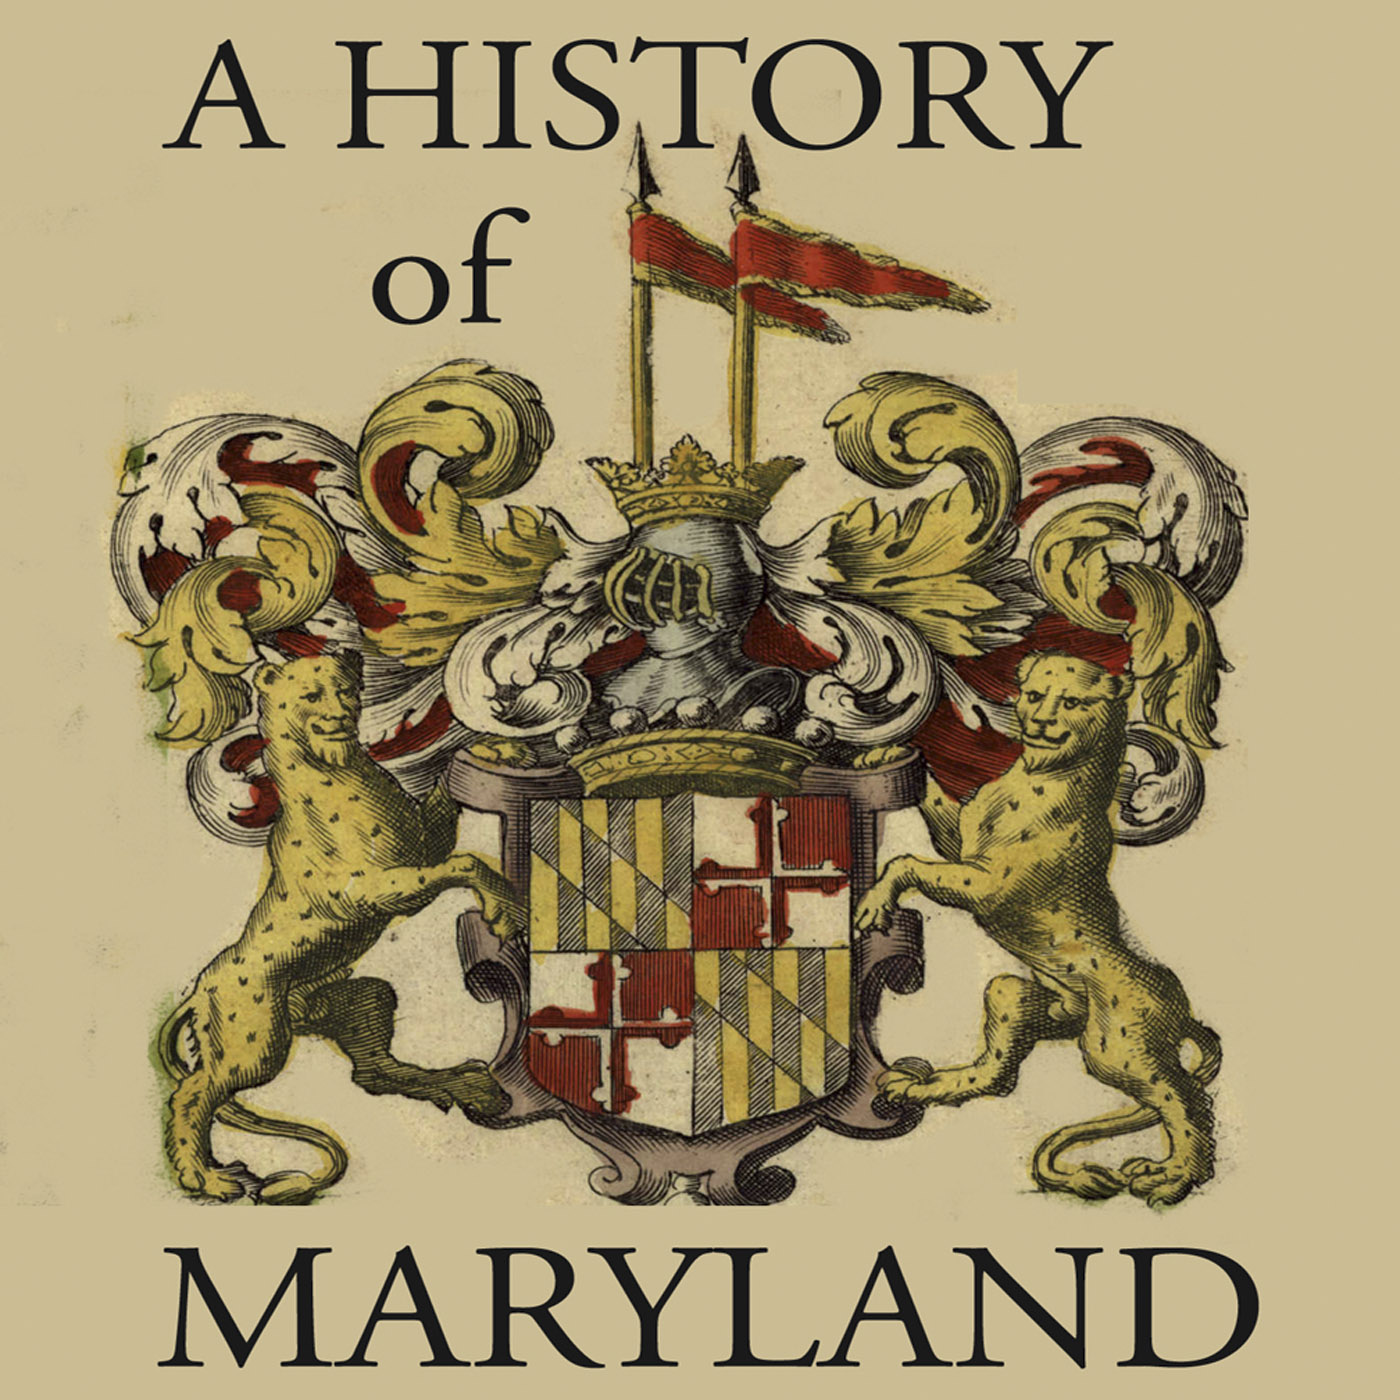 A History of Maryland